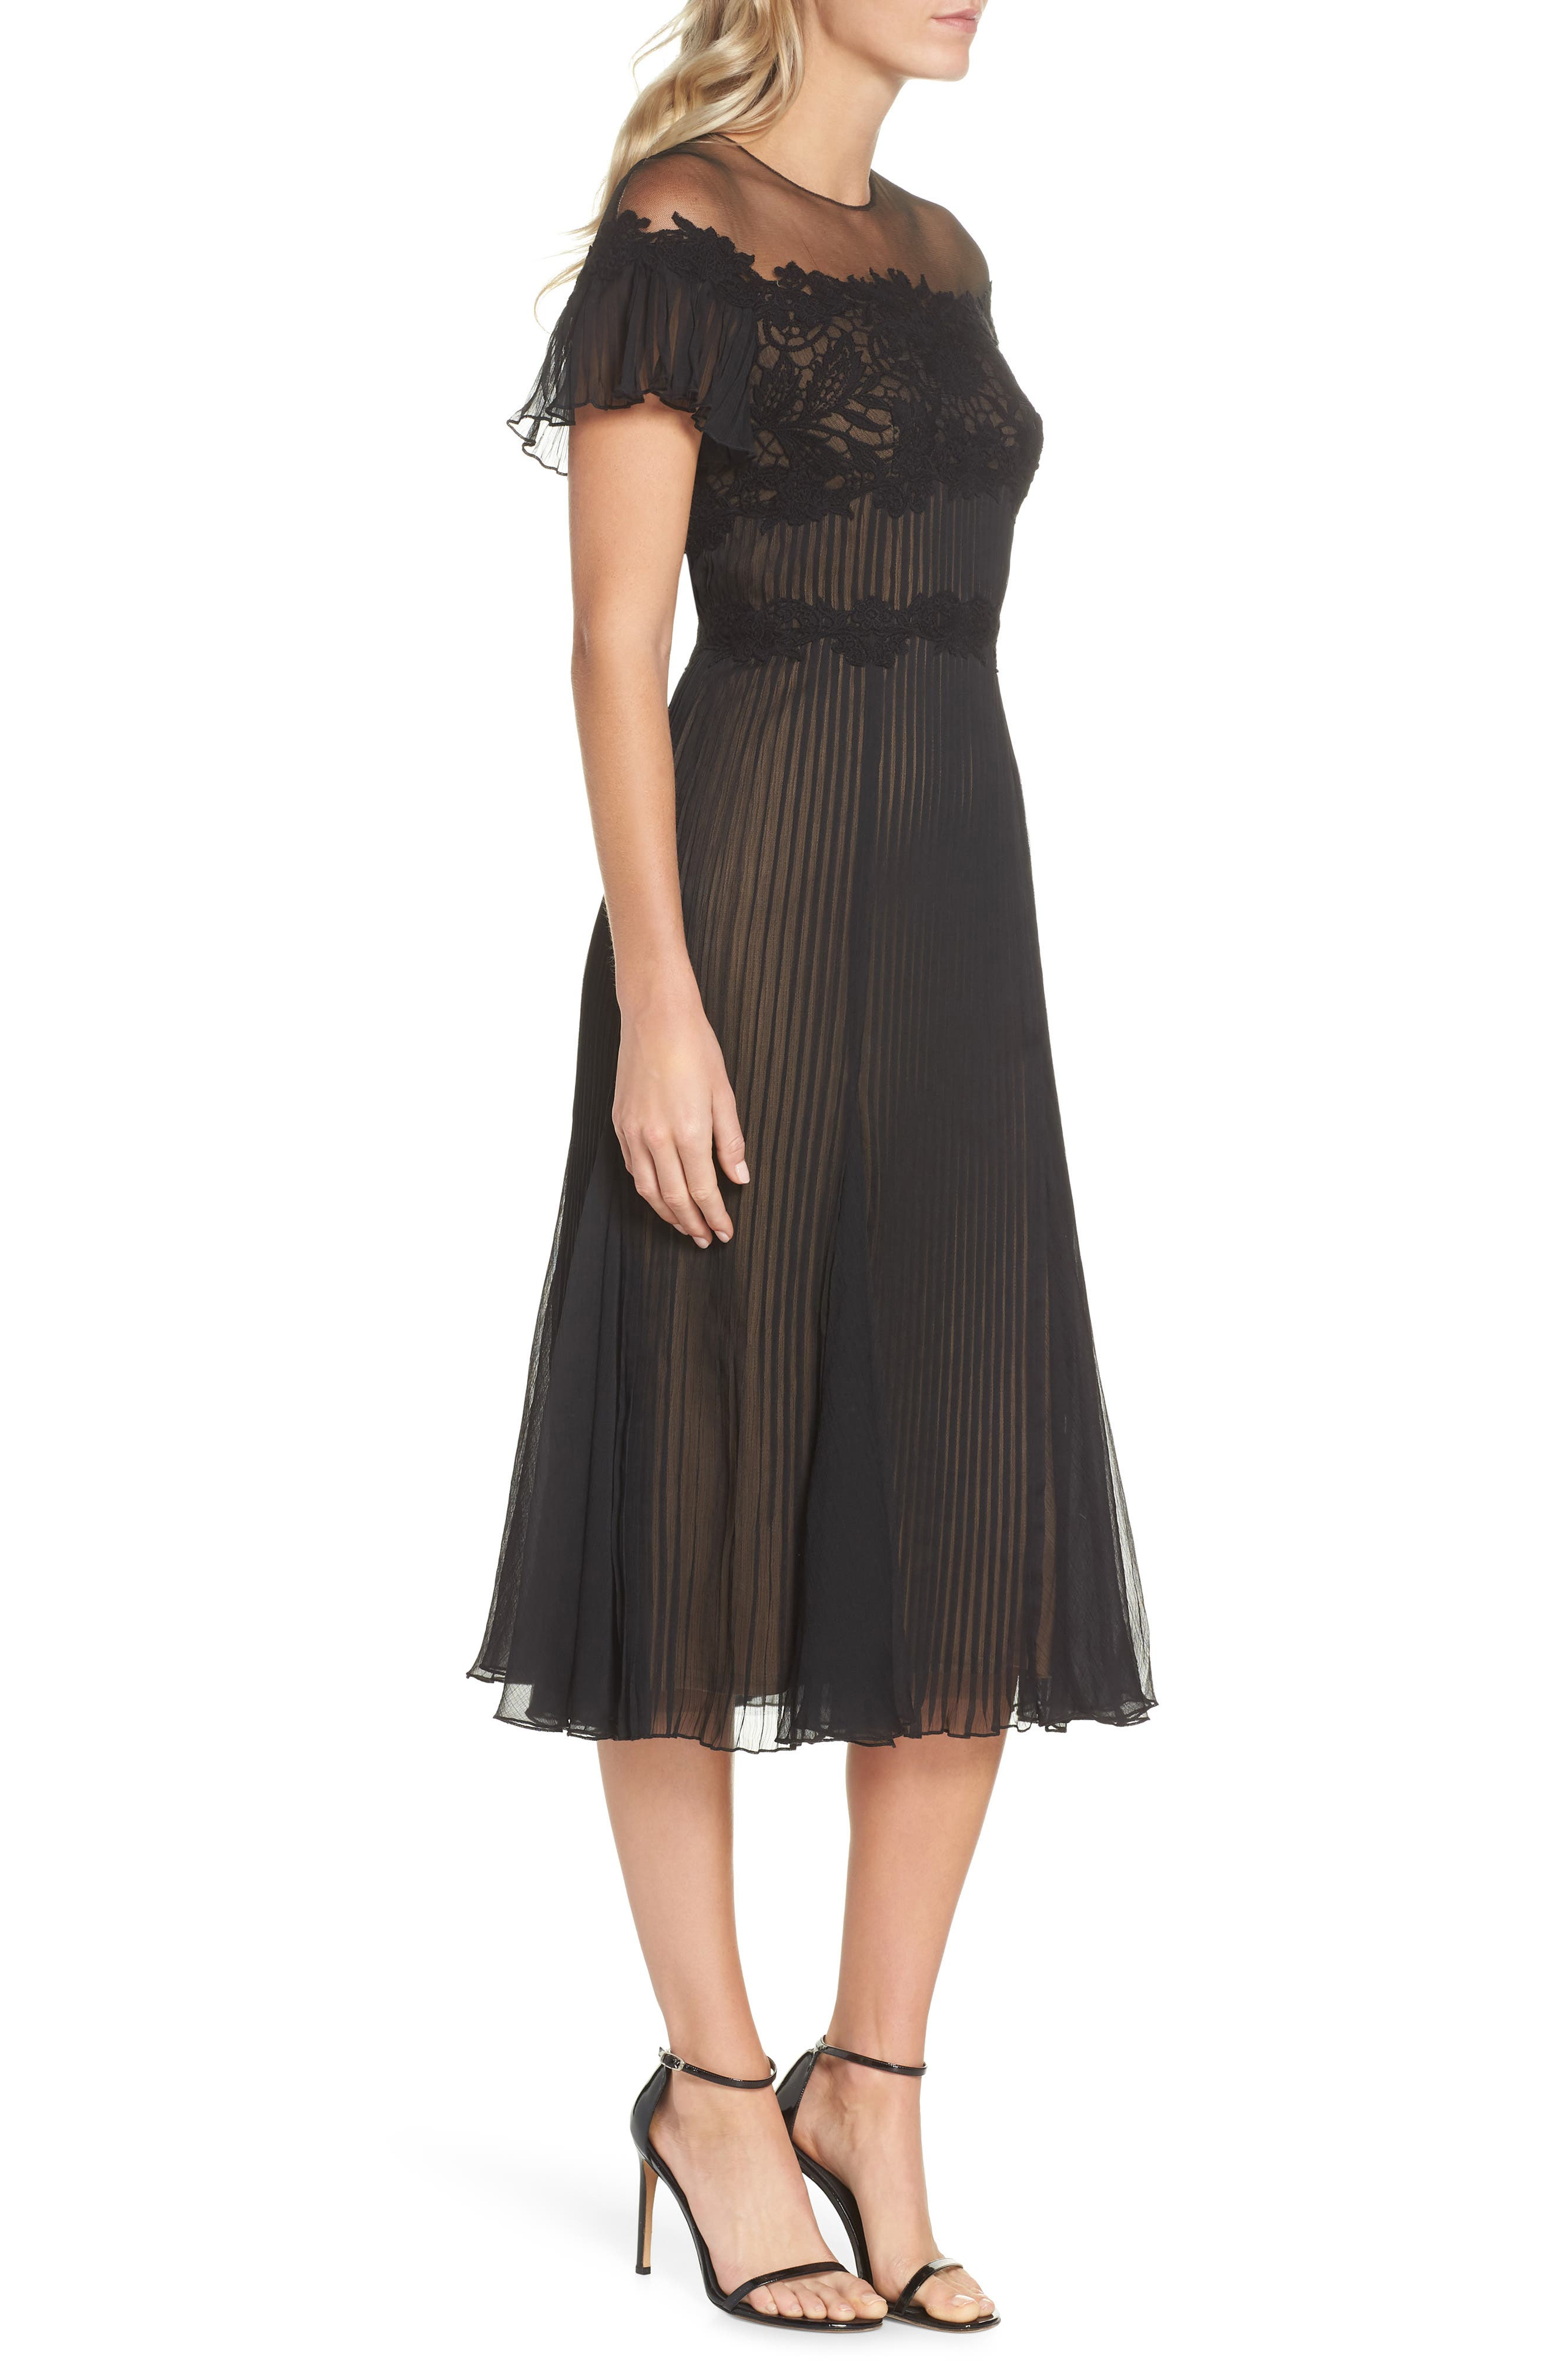 TADASHI SHOJI,                             Lace & Chiffon A-Line Dress,                             Alternate thumbnail 4, color,                             BLACK/ NUDE